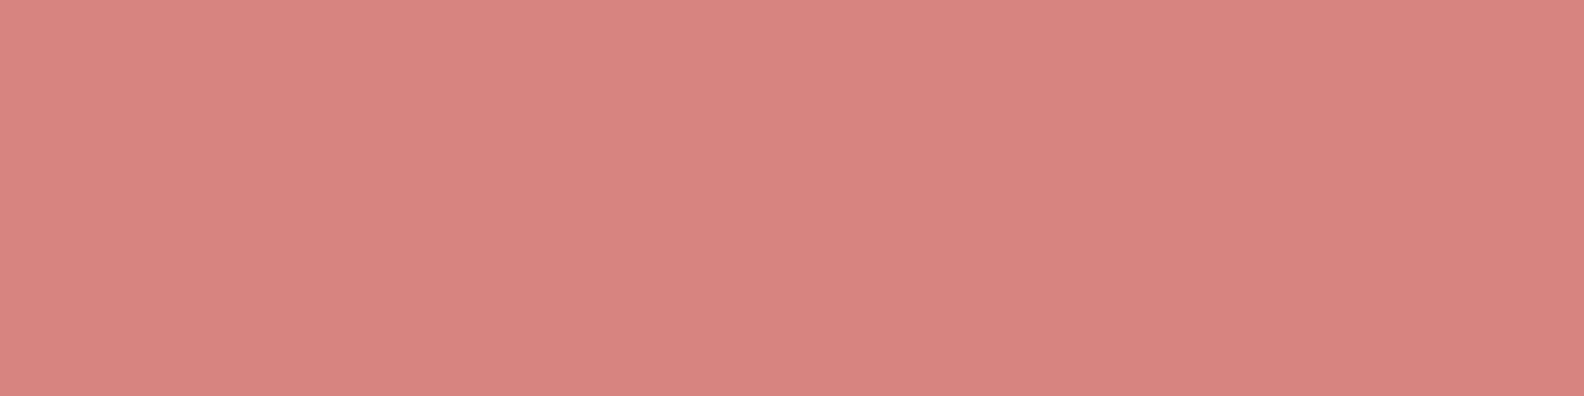 1584x396 New York Pink Solid Color Background